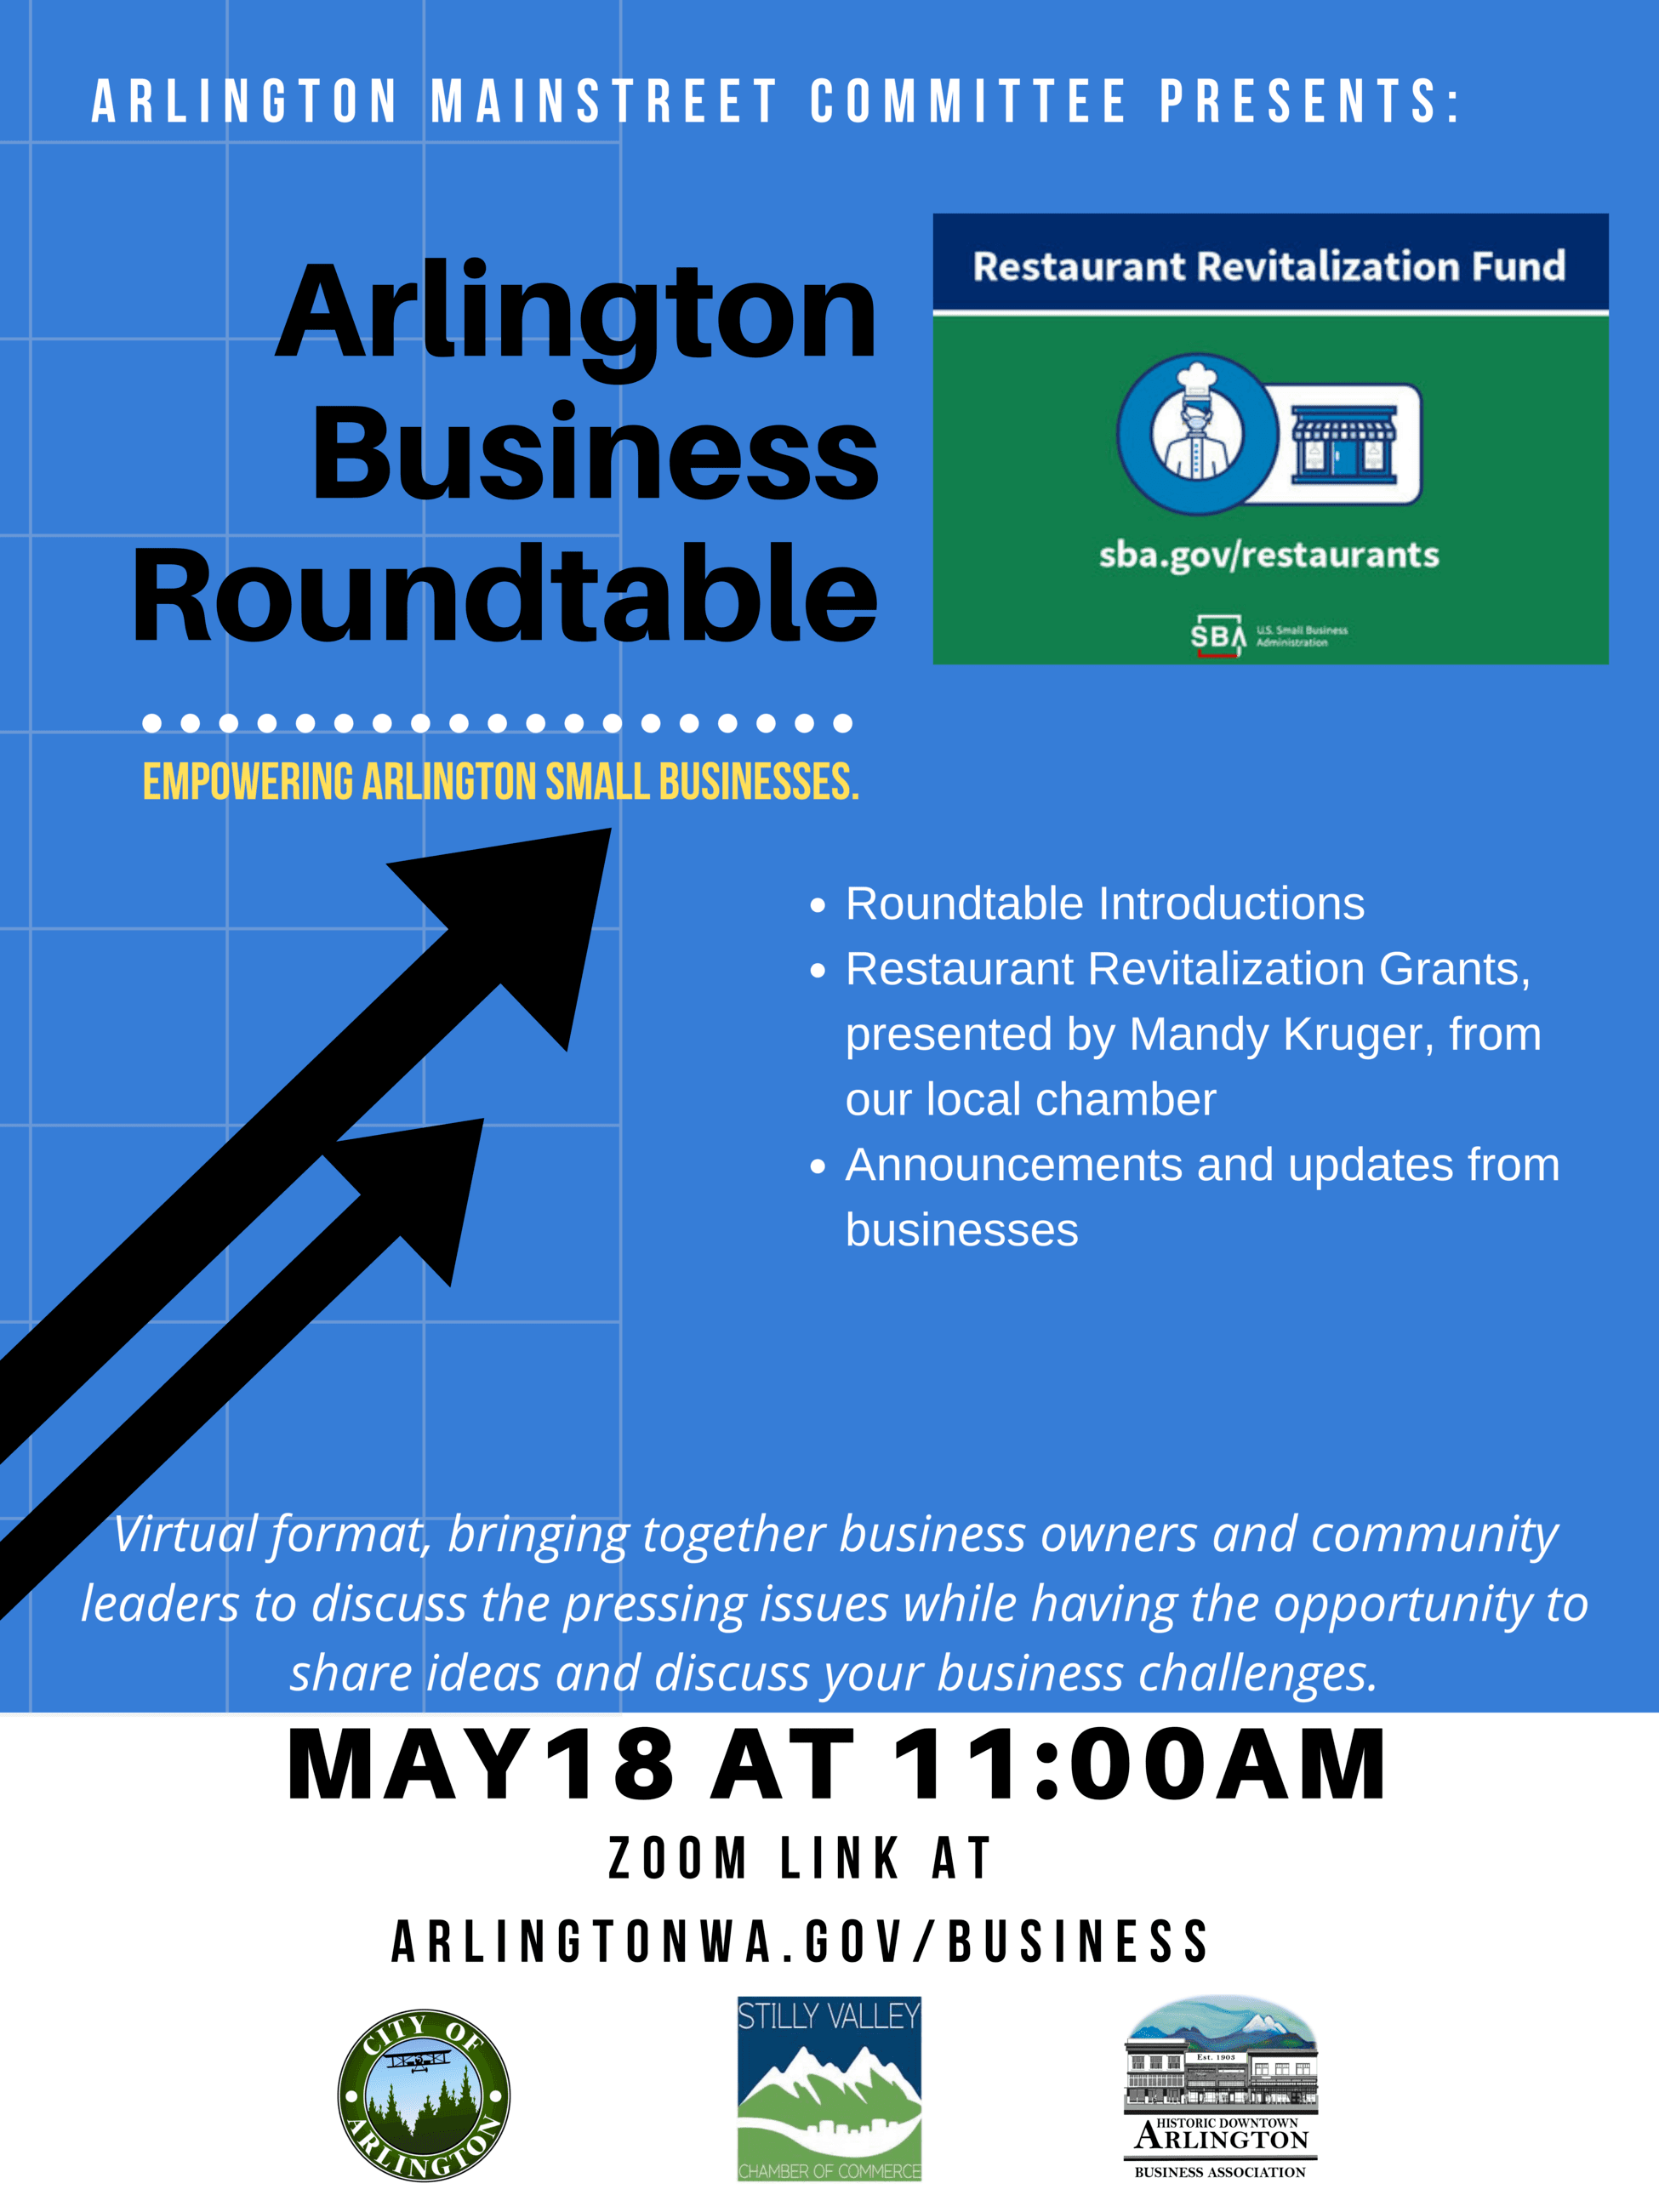 Copy of Arlington Business Roundtable (5)